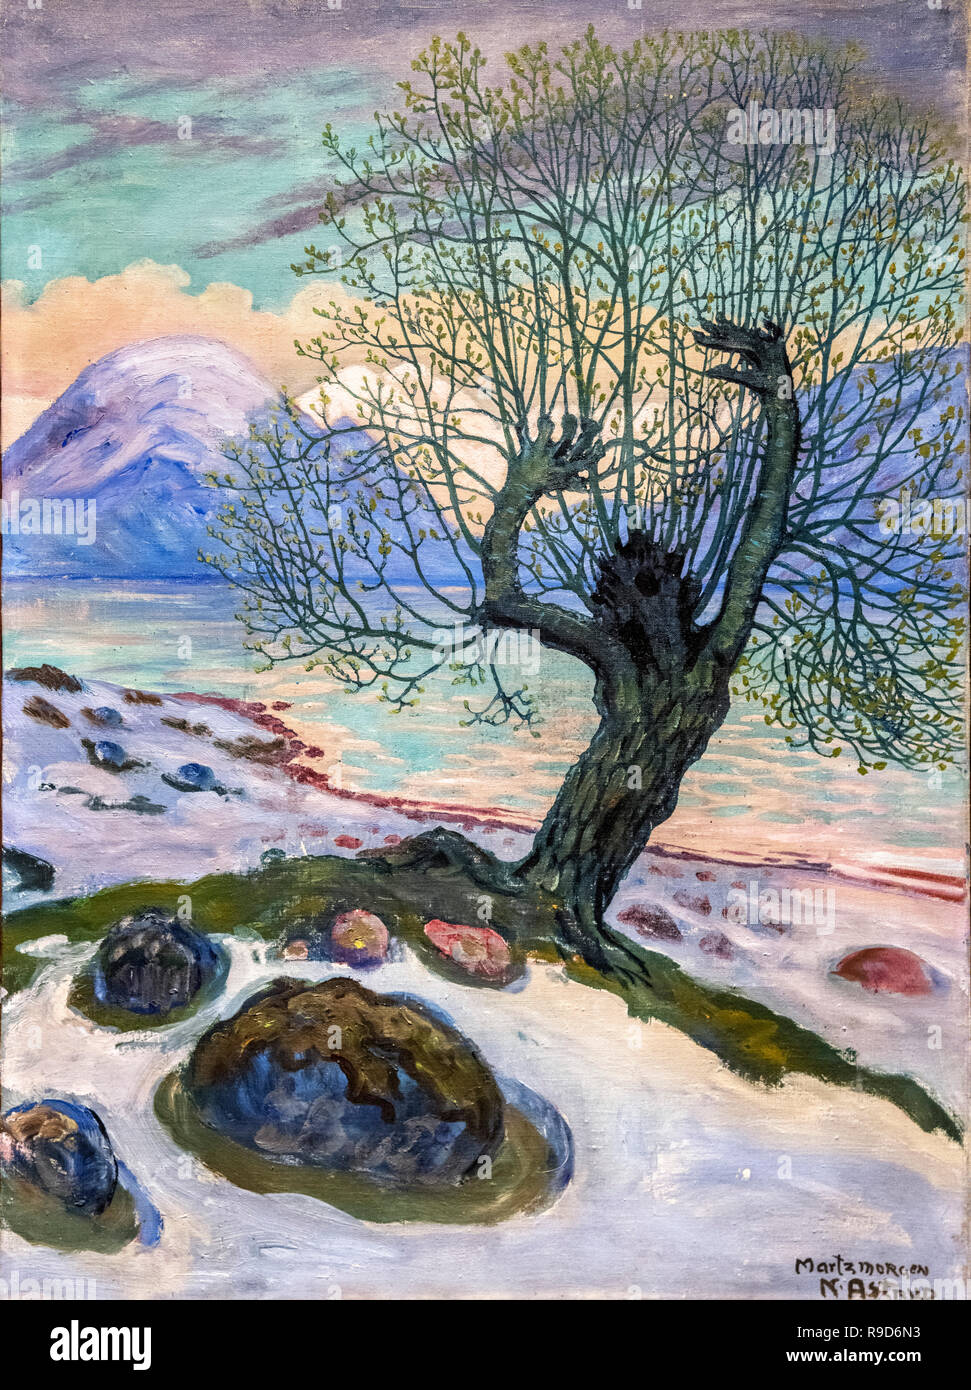 Marsmorgen - A Morning in March by Nikolai Astrup (1880-1928), oil on canvas, c.1920 - Stock Image